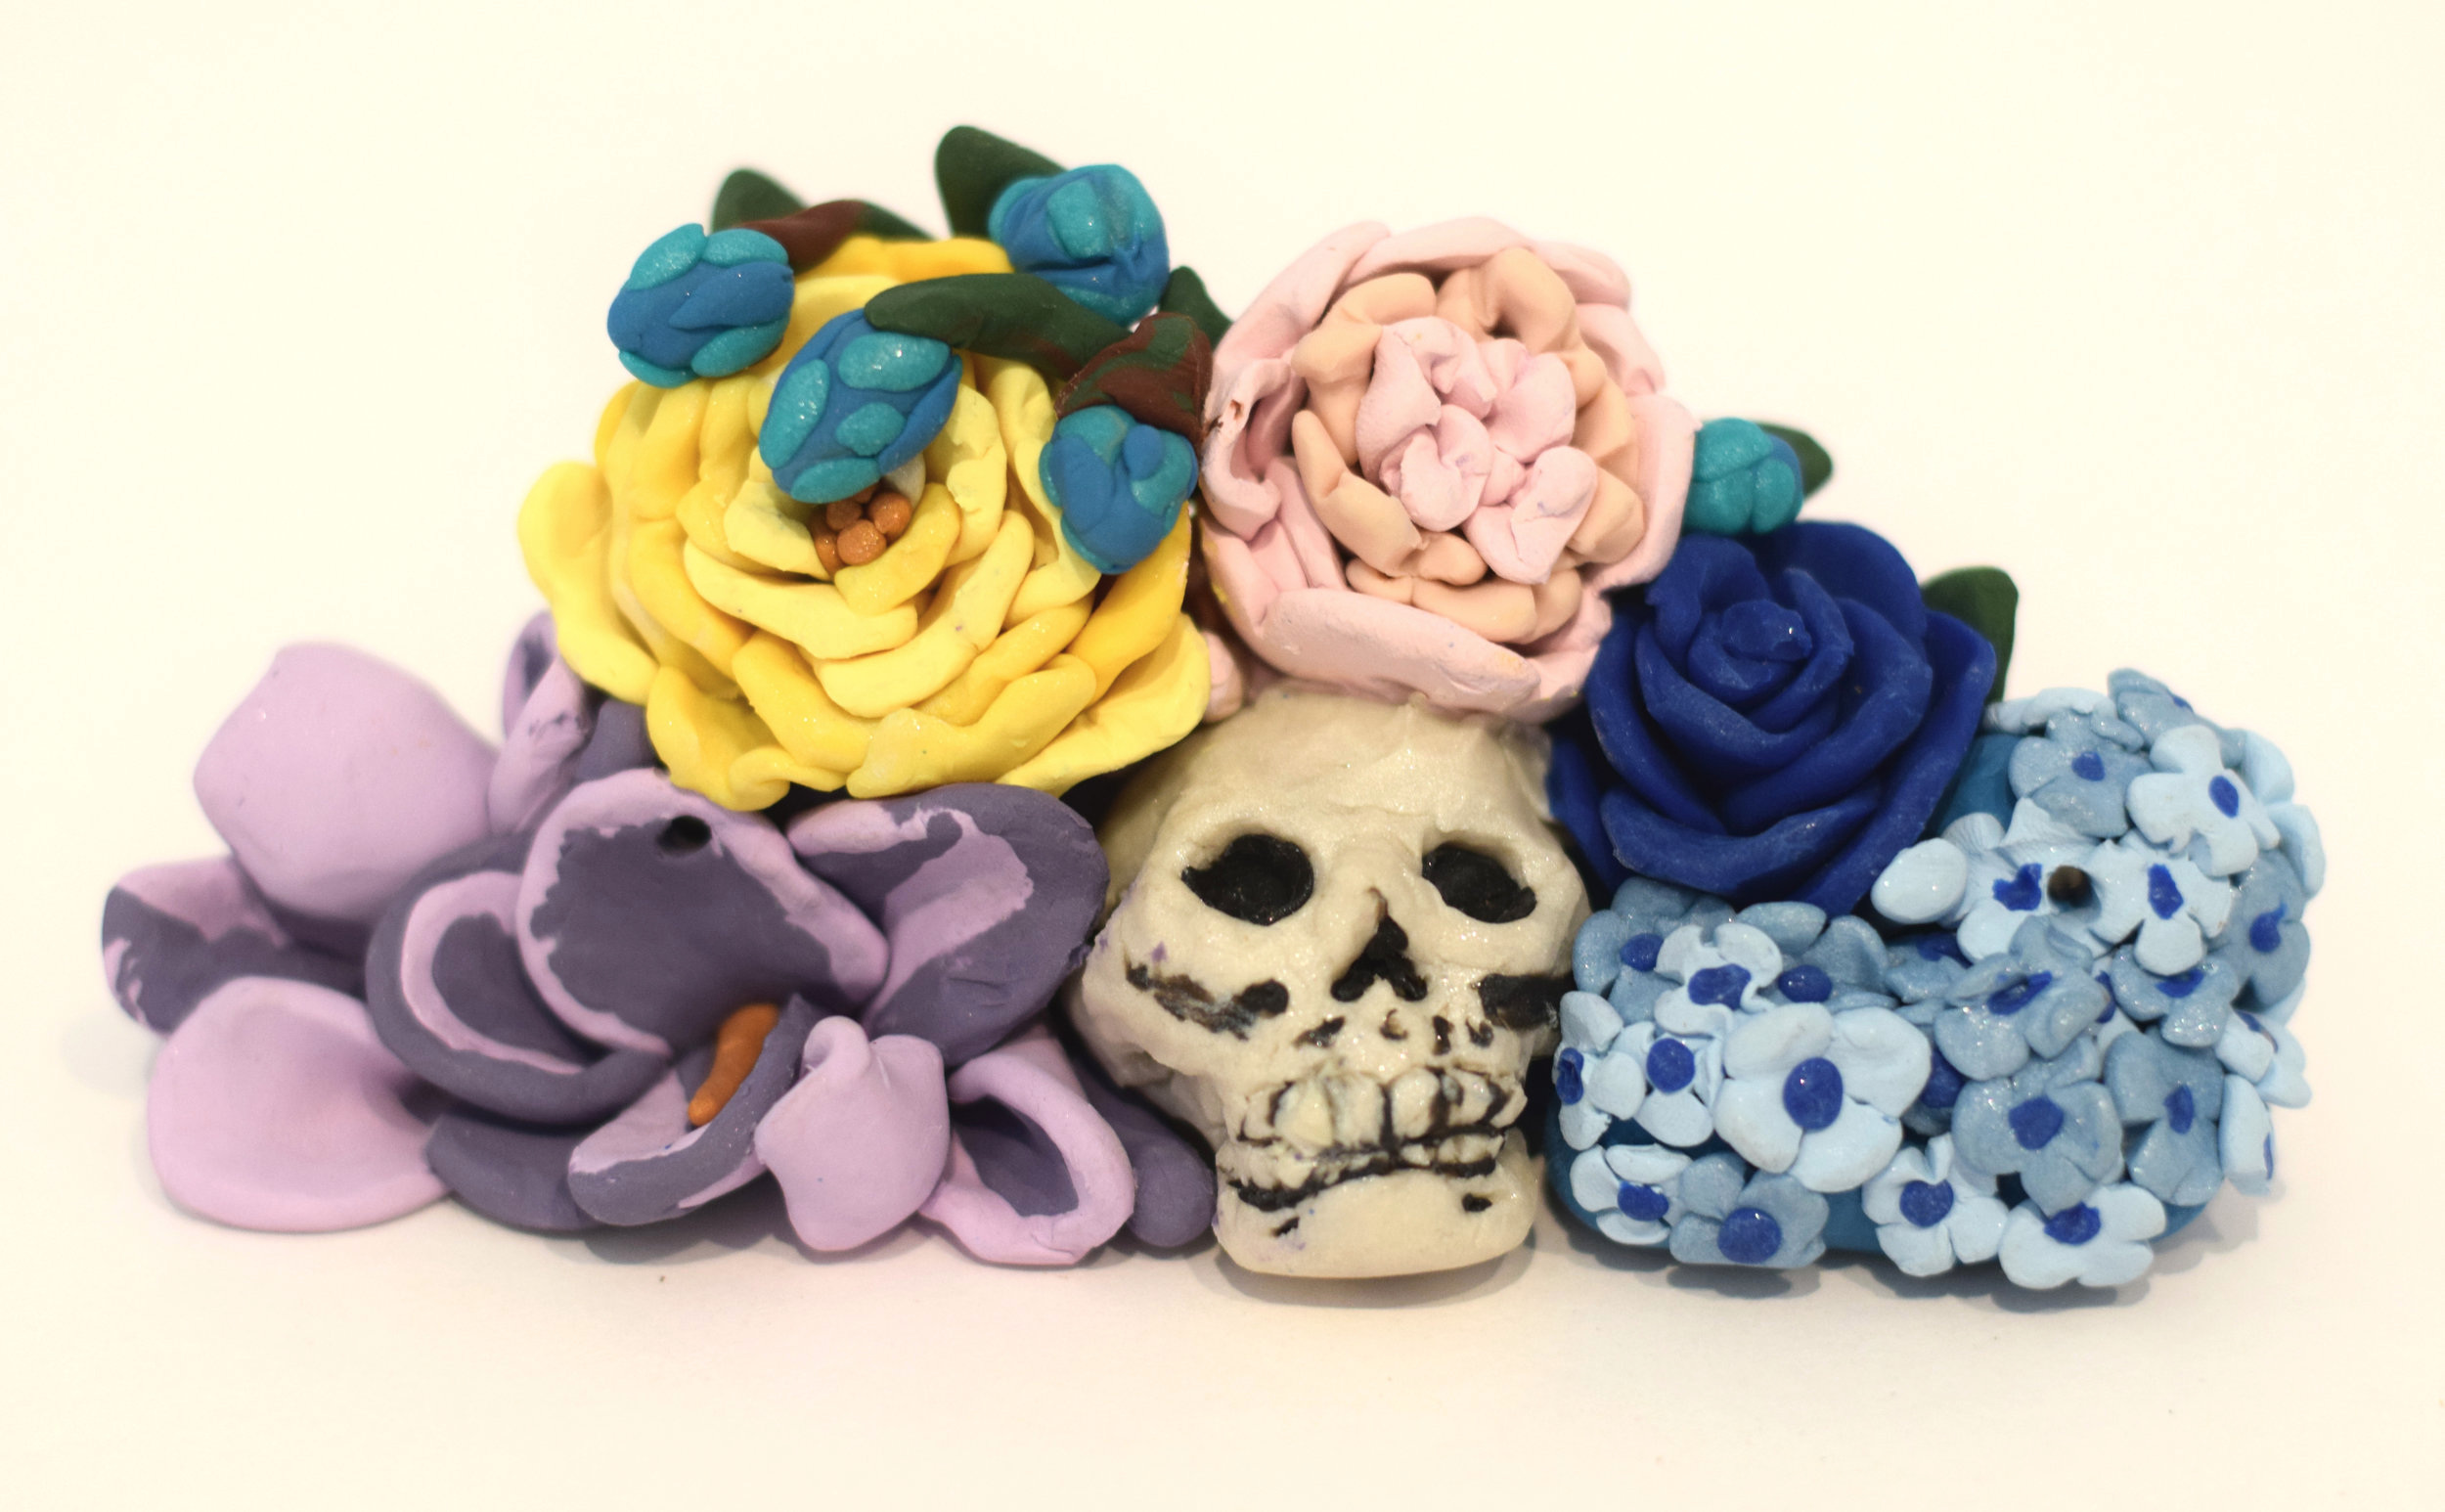 Polymer clay sculpture 2 in. x 5.5 in. x 2.75 in.